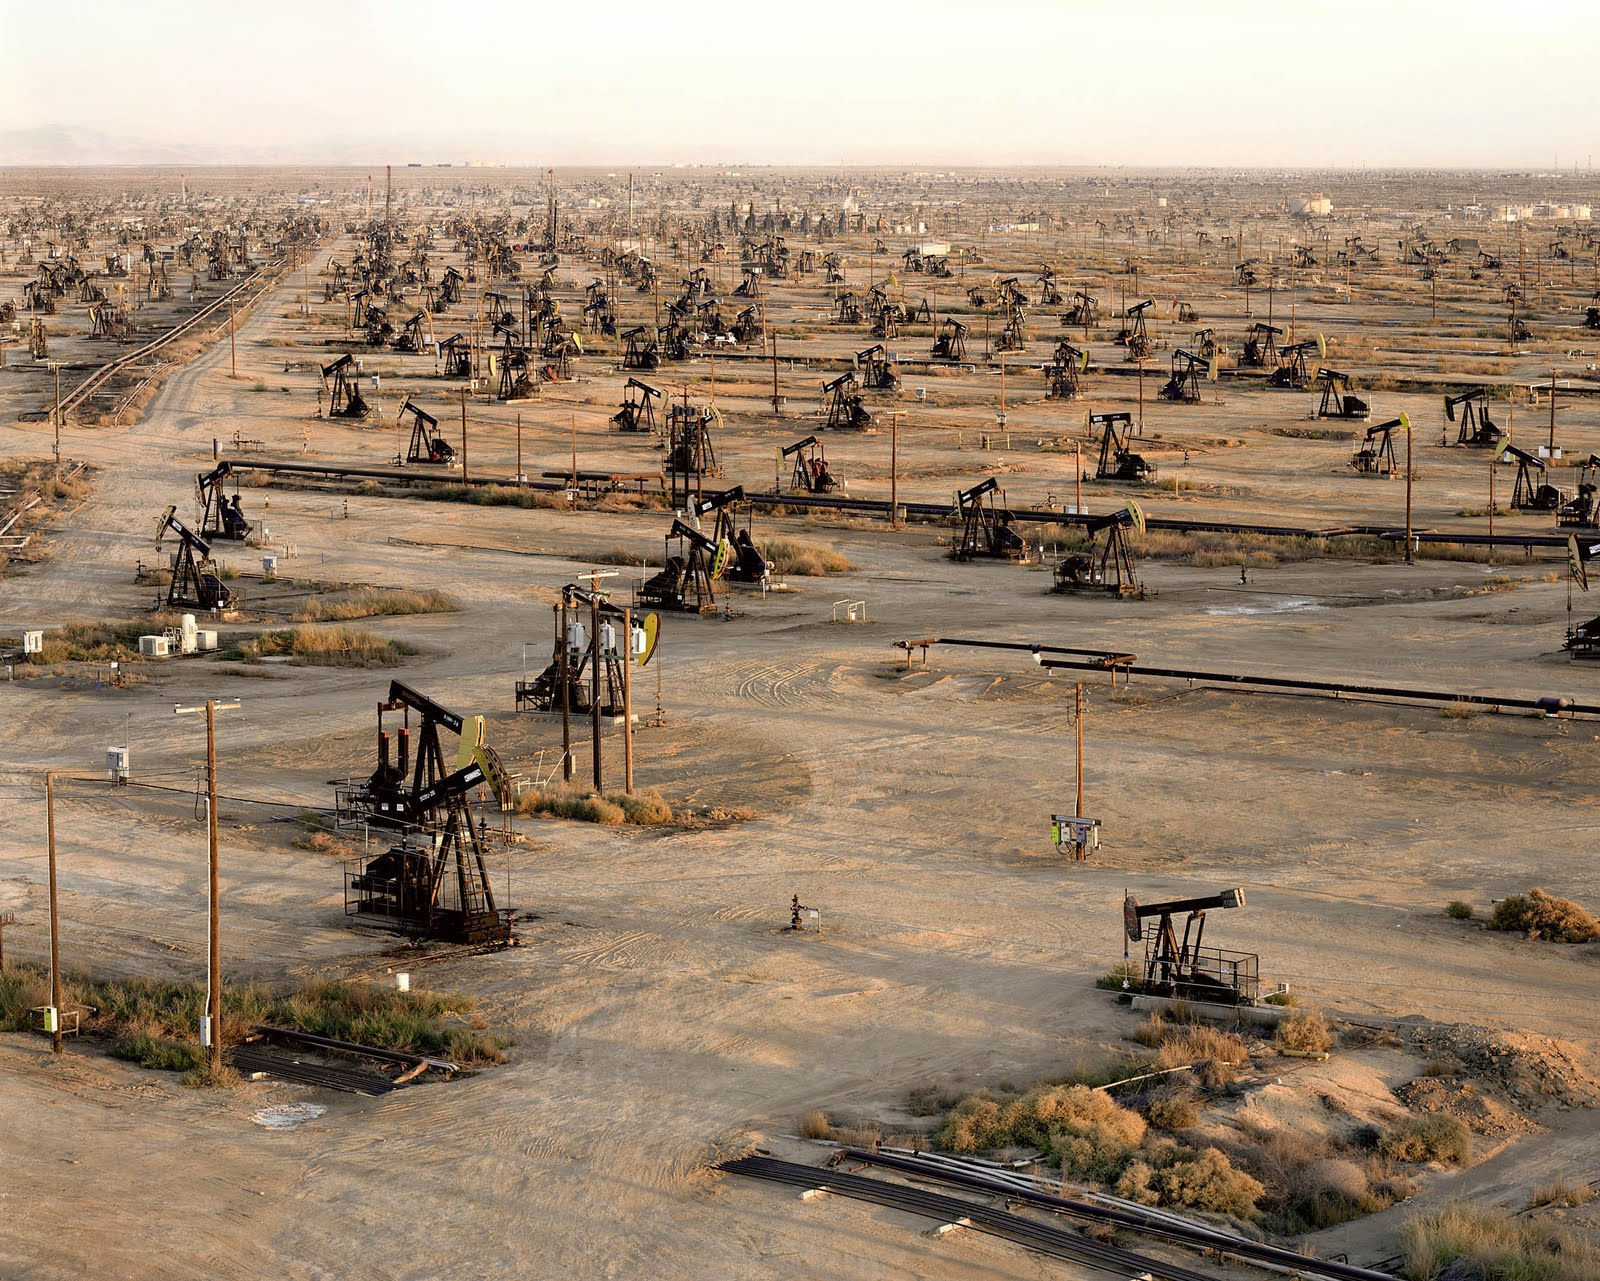 Edward Burtynsky - Oil Fields